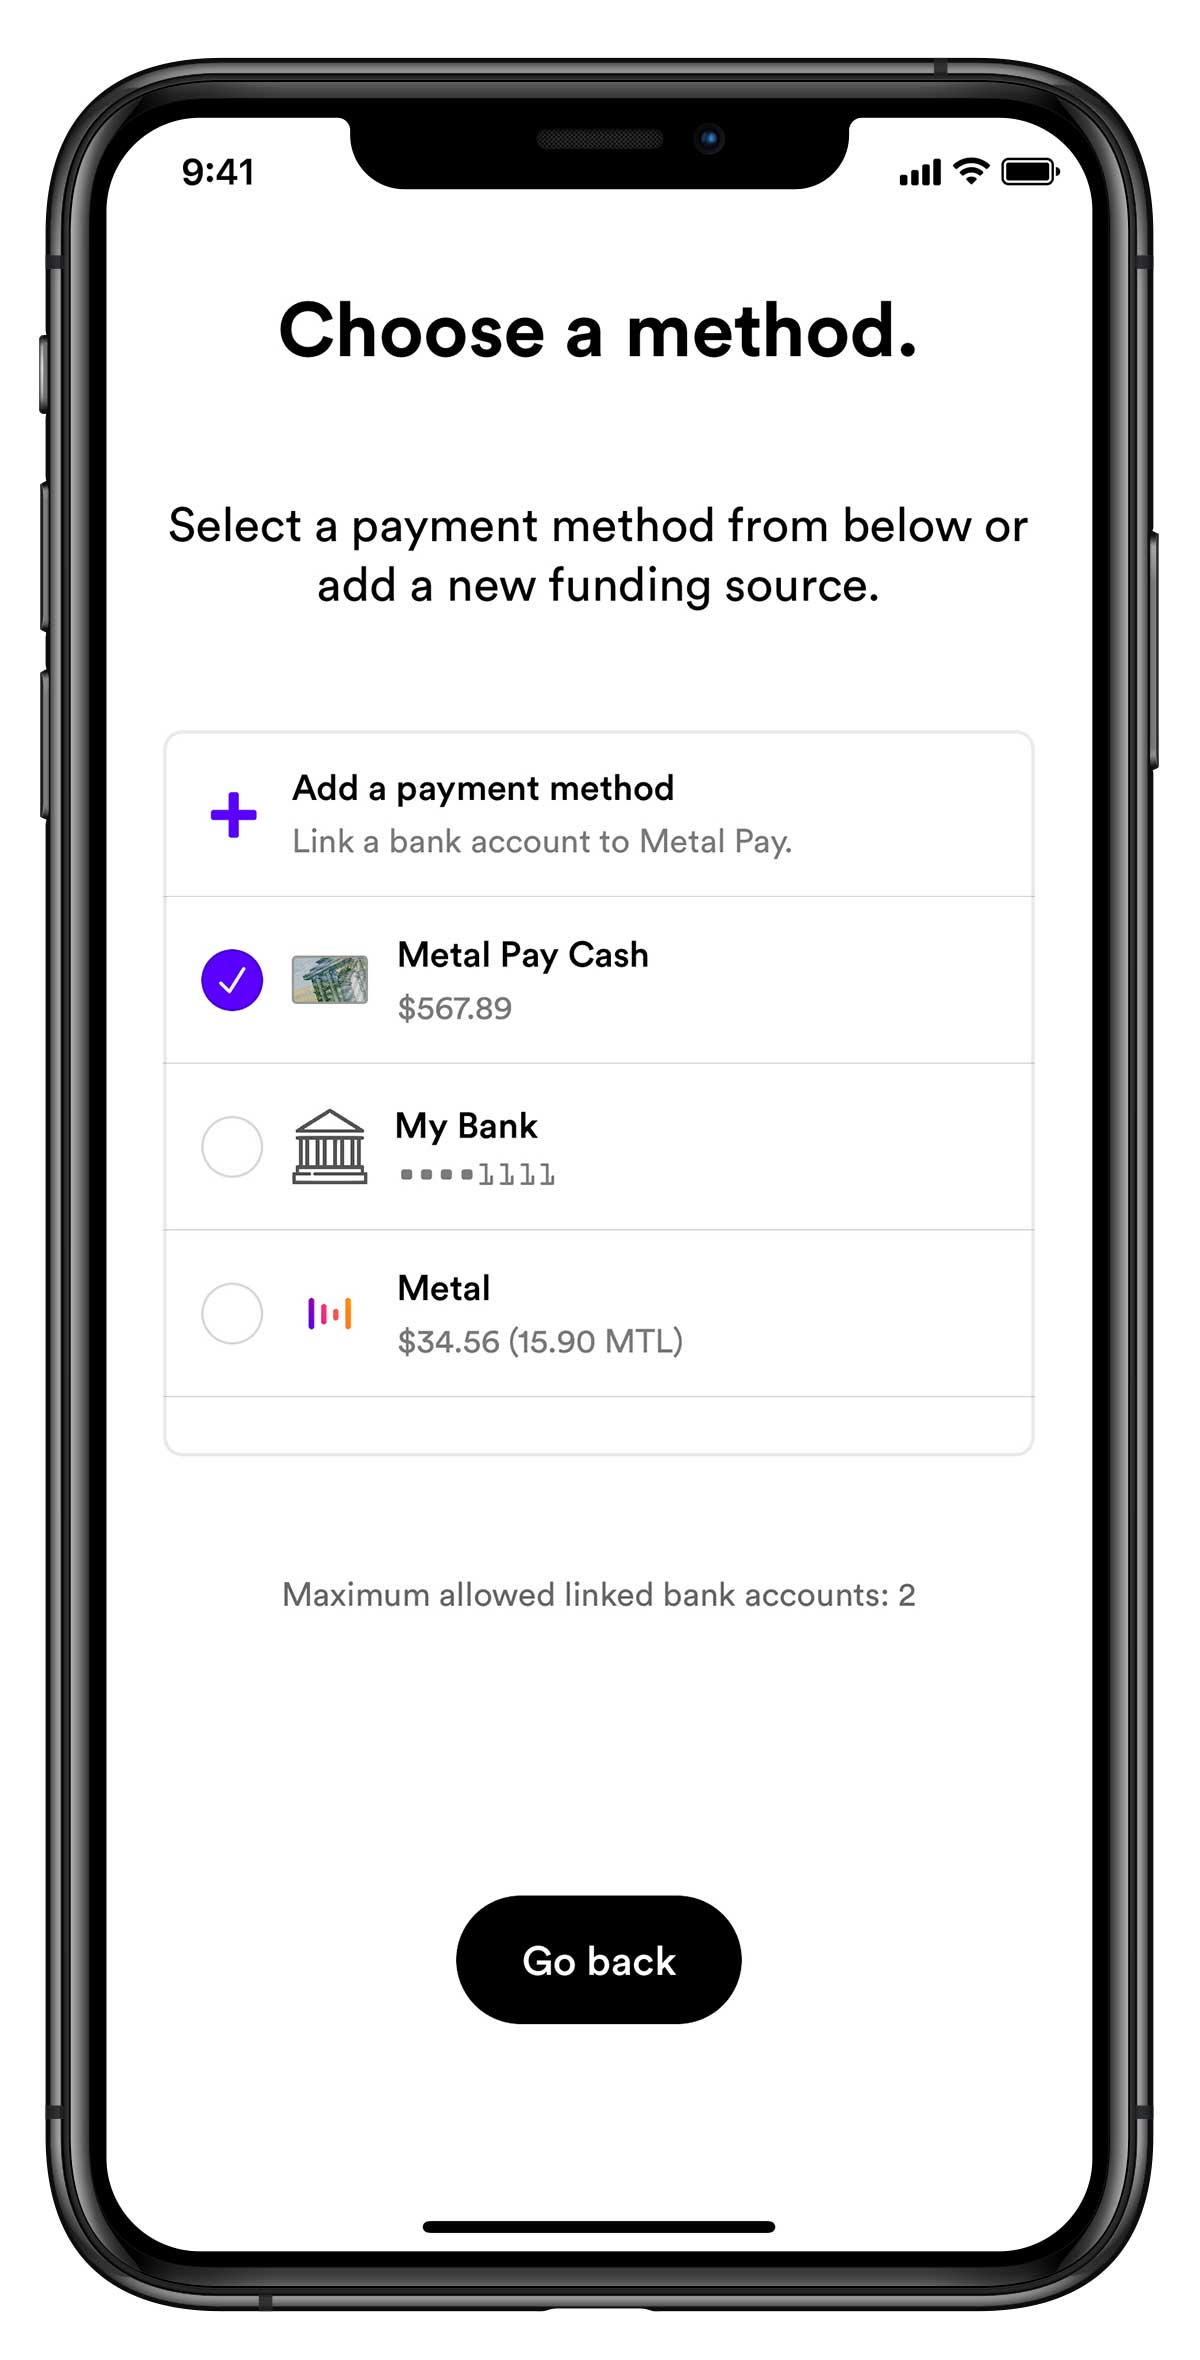 MetalPay_iOS_8-0-1_FundingSource